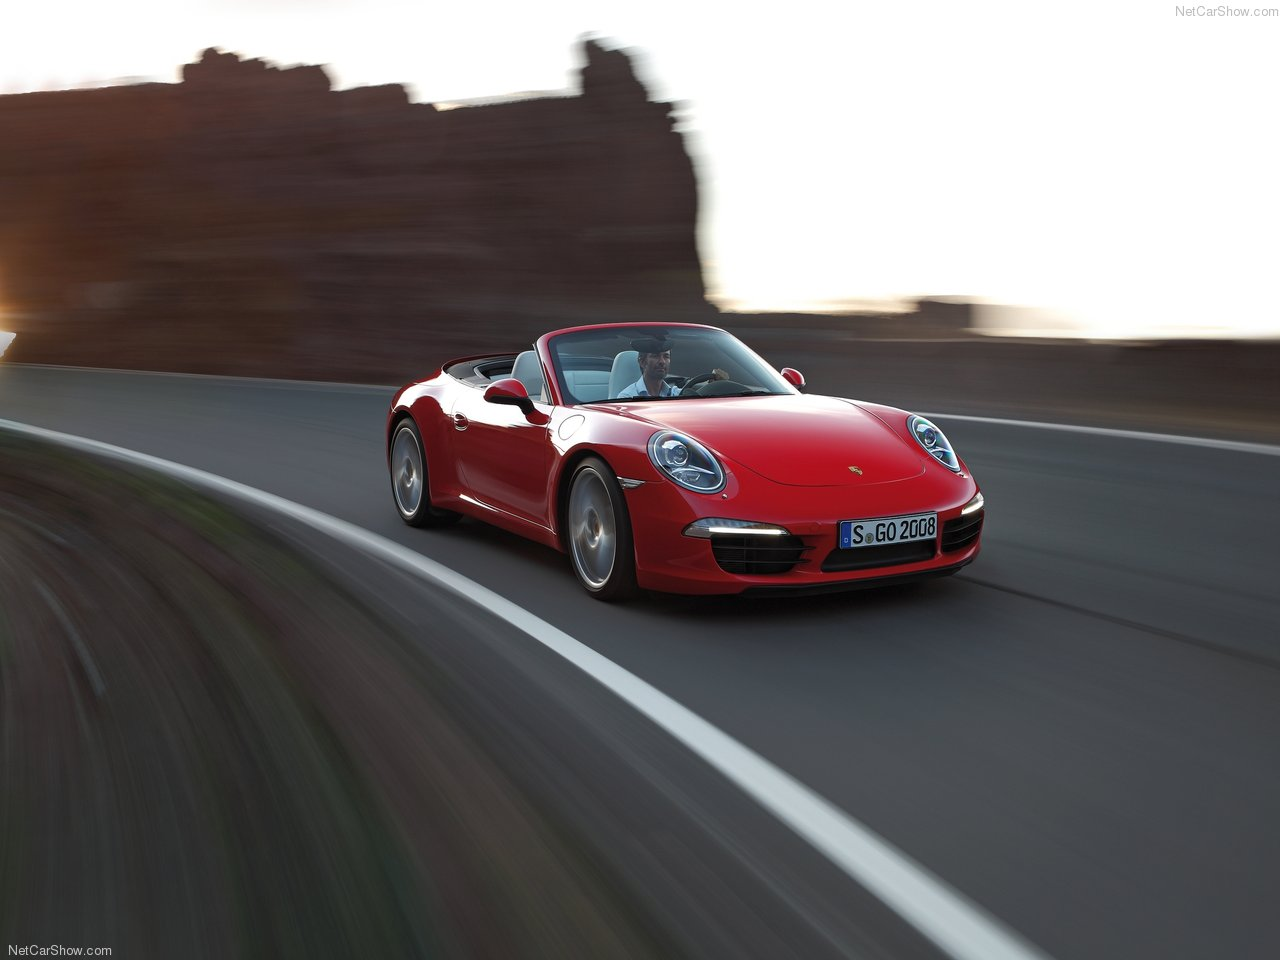 Porsche 911 Carrera S Cabriolet photo 86635